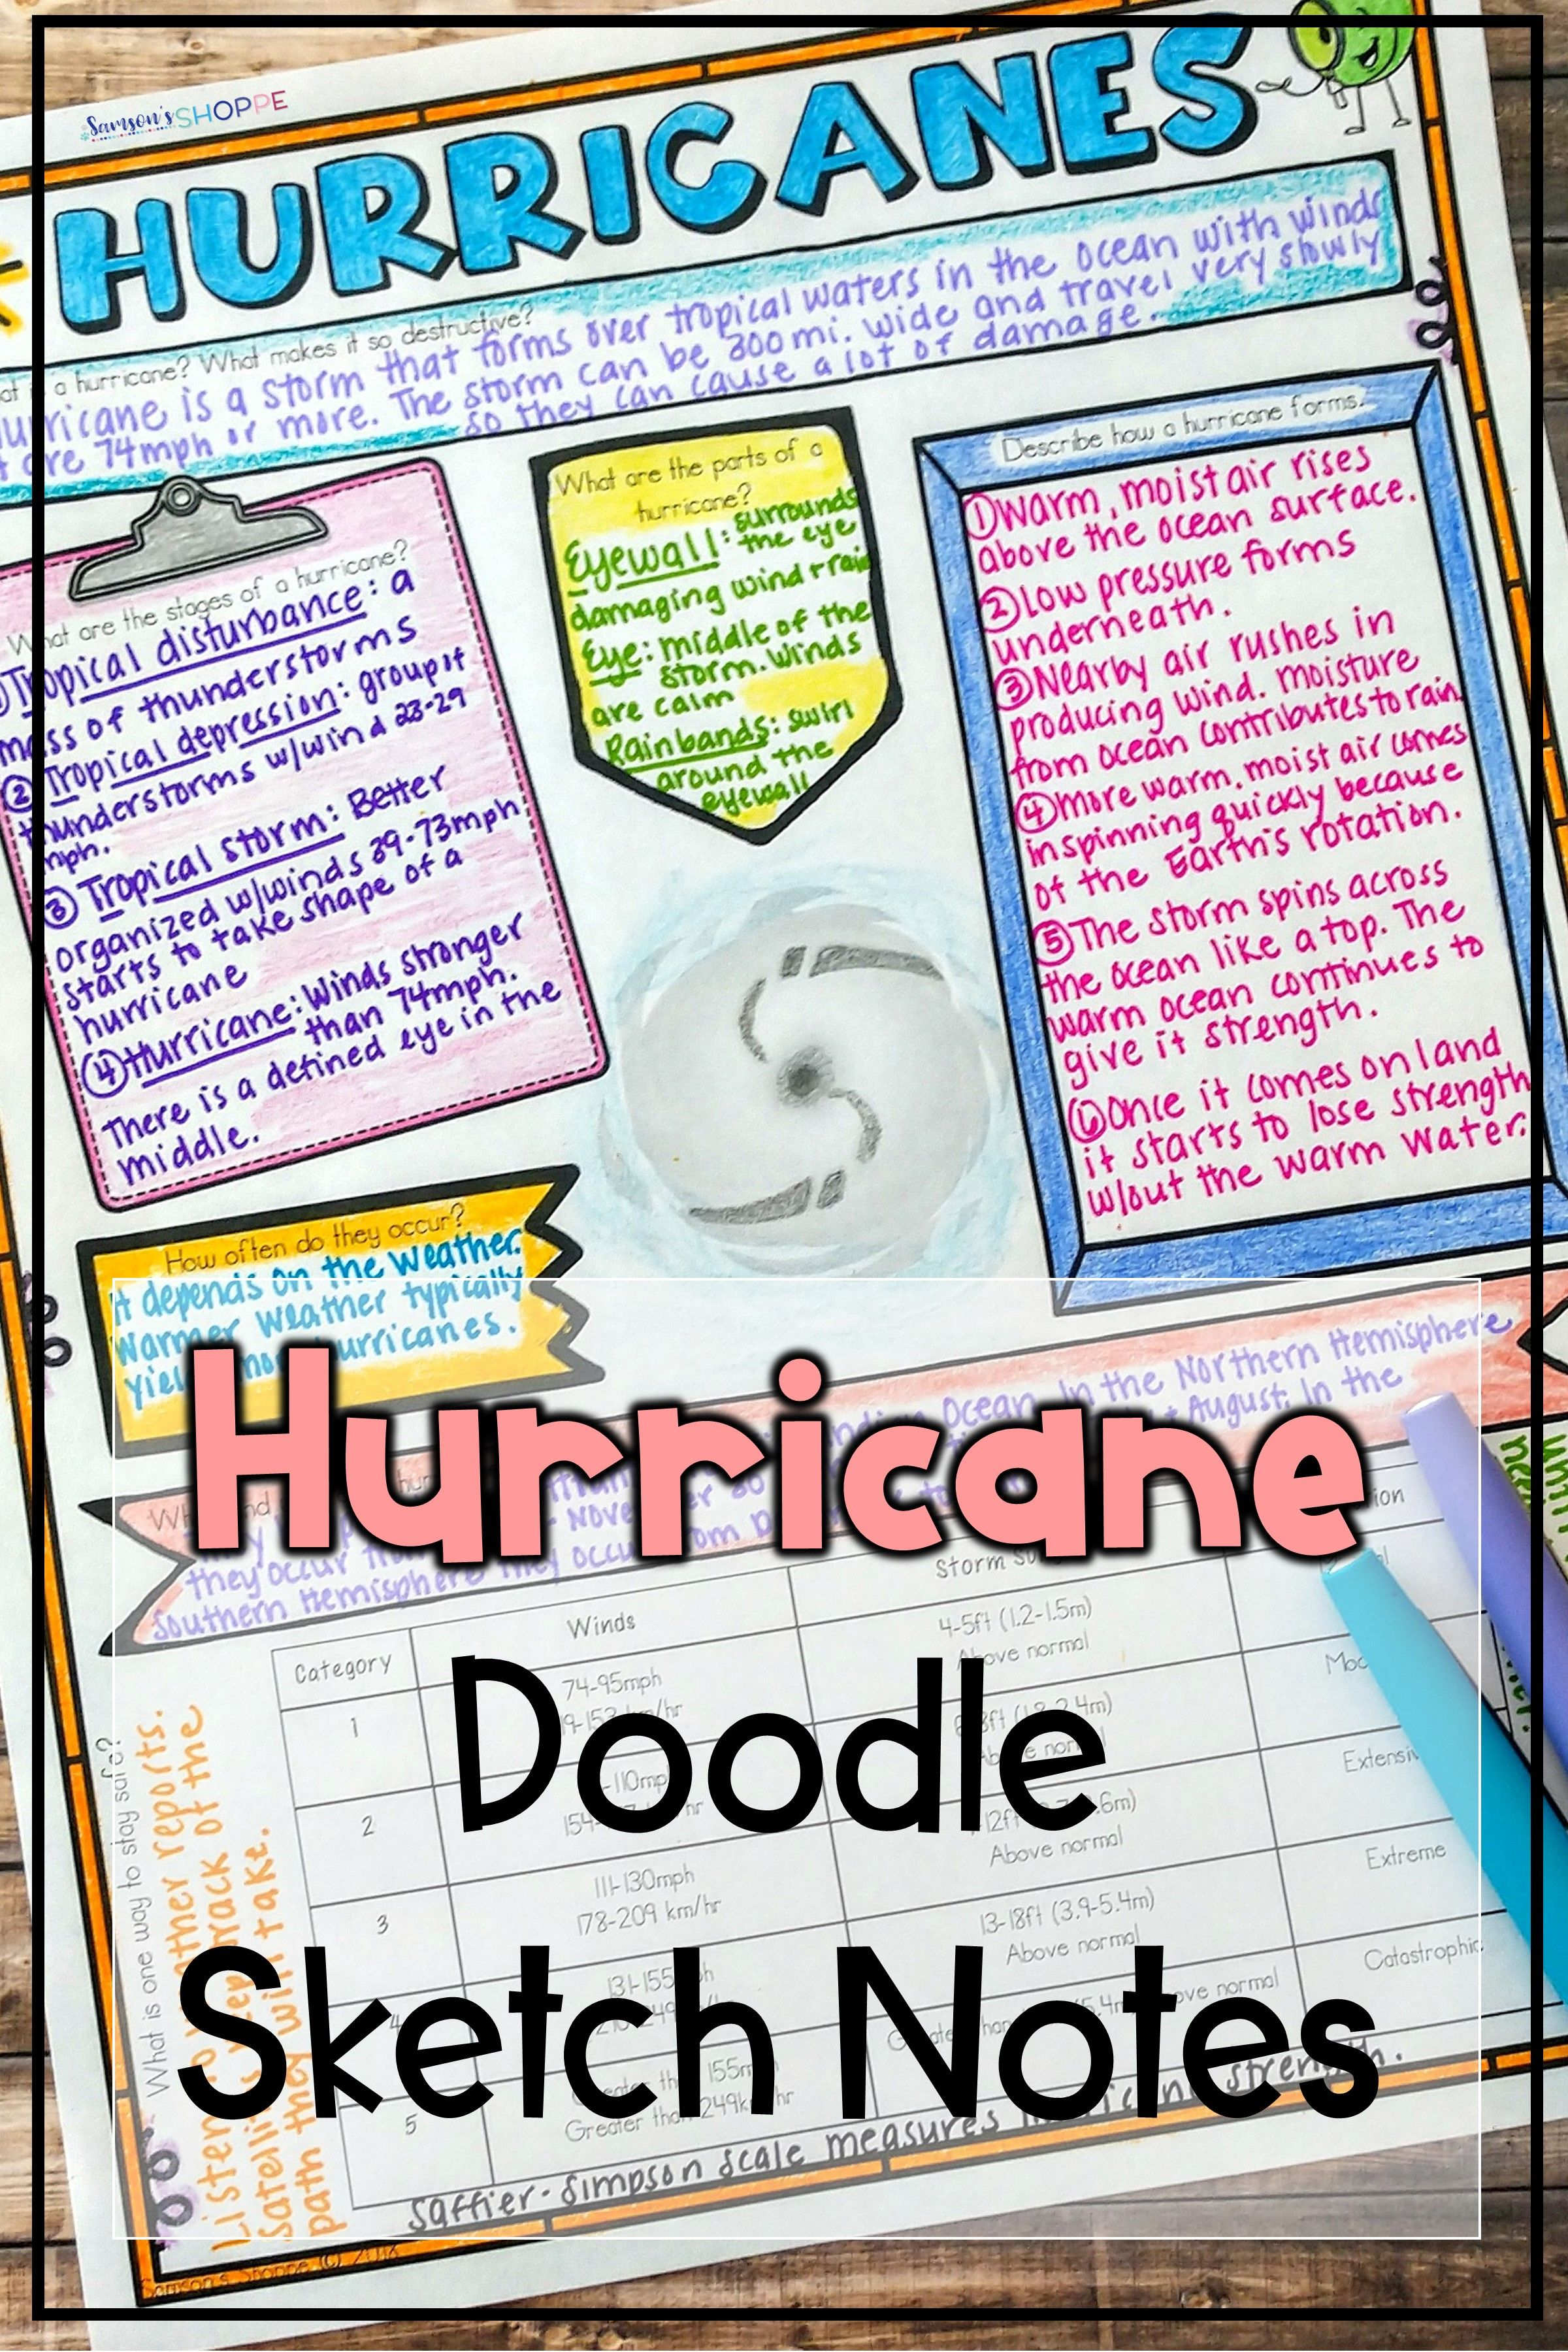 Hurricane Natural Disaster Wild Weather Sketch Note